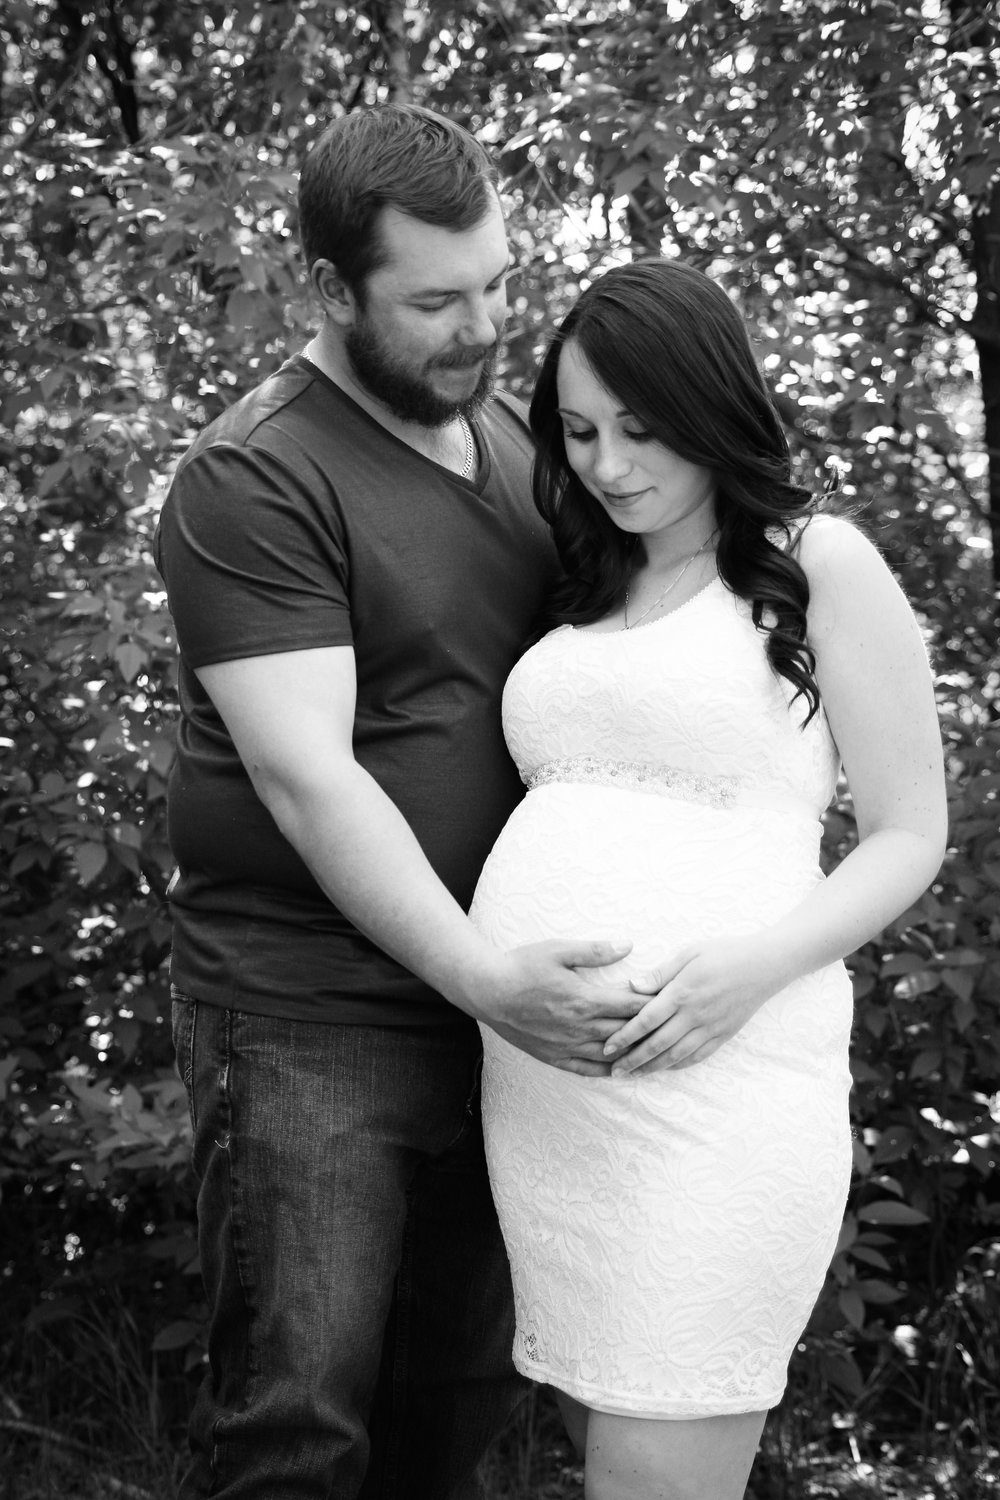 M&P {Expecting!}_WEB-32.jpg